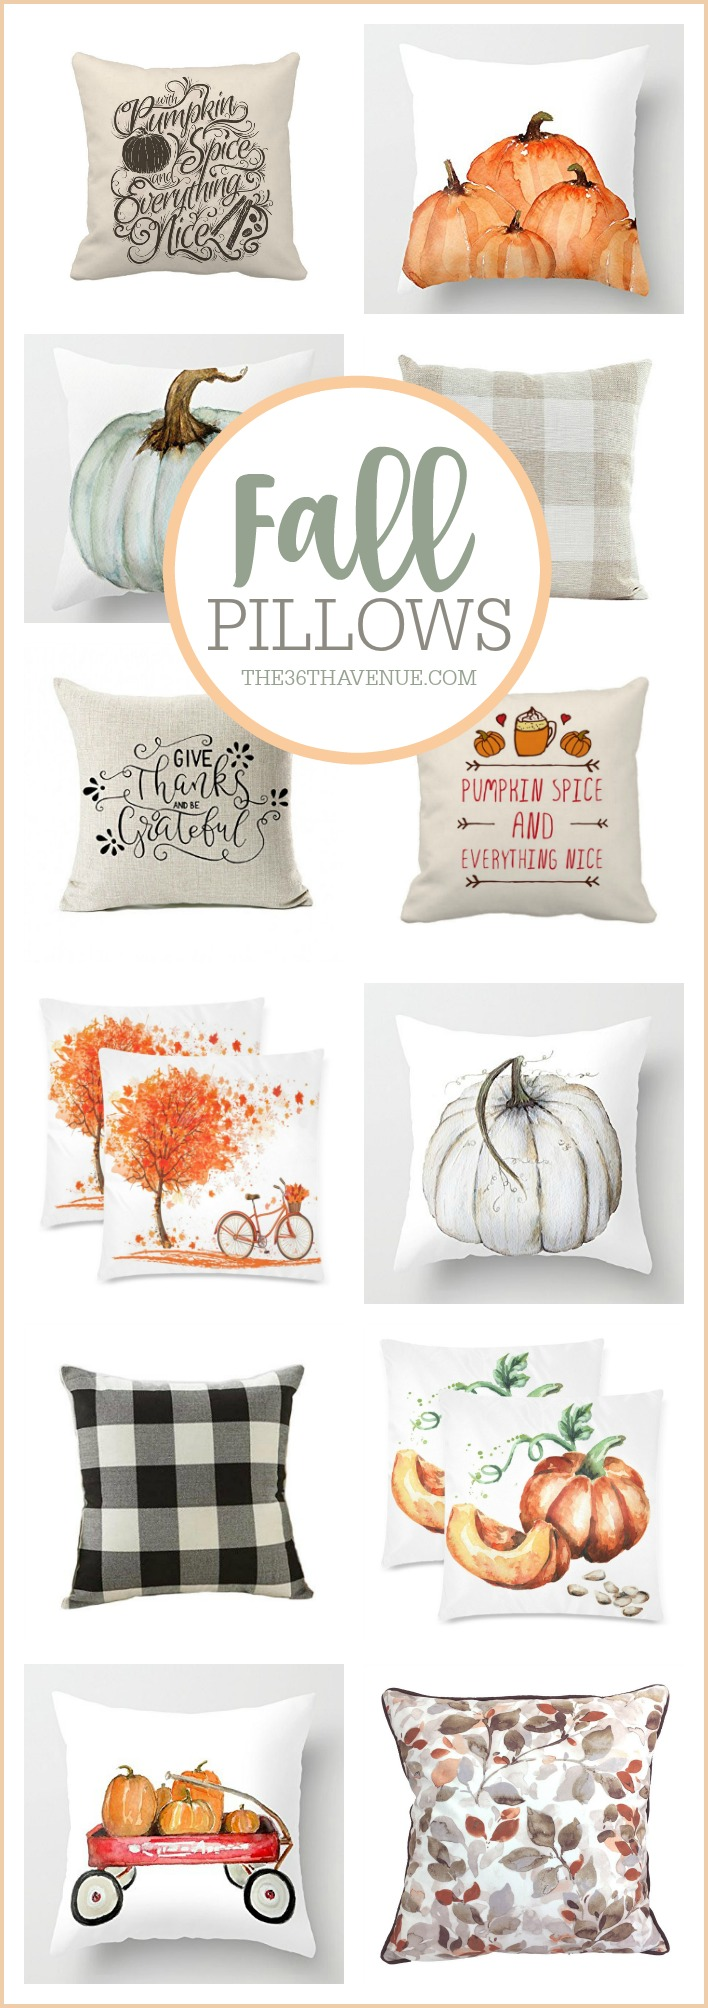 Fall Pillows, Fall Home Decor, Farmhouse Decor Ideas